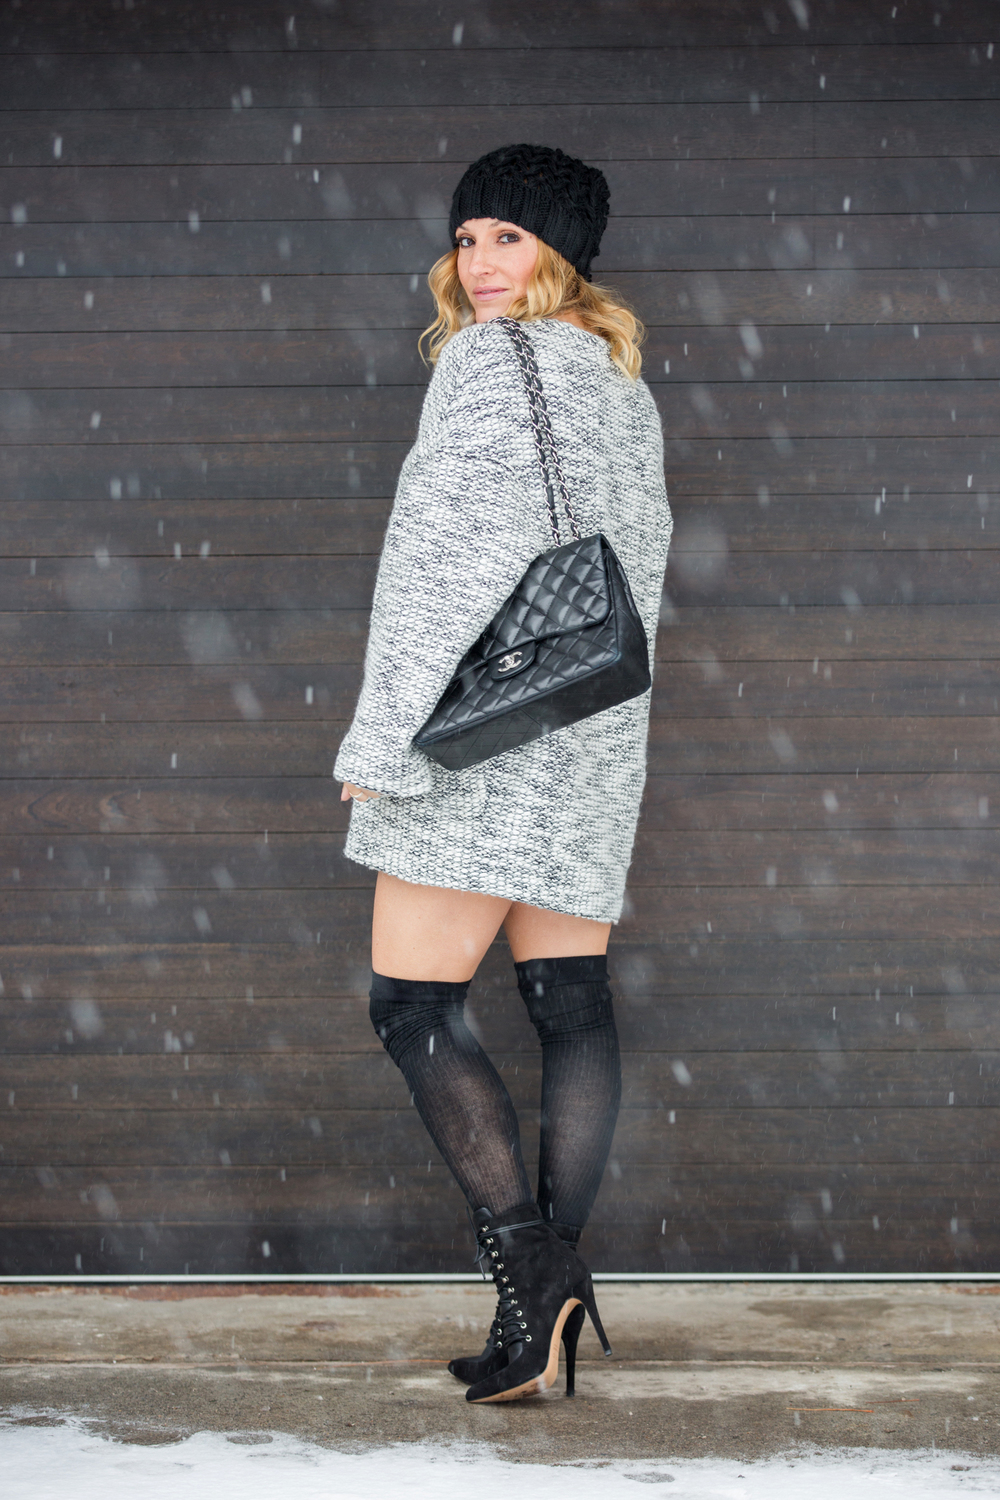 How to leopard wear print wedge booties, The trends latest in leather